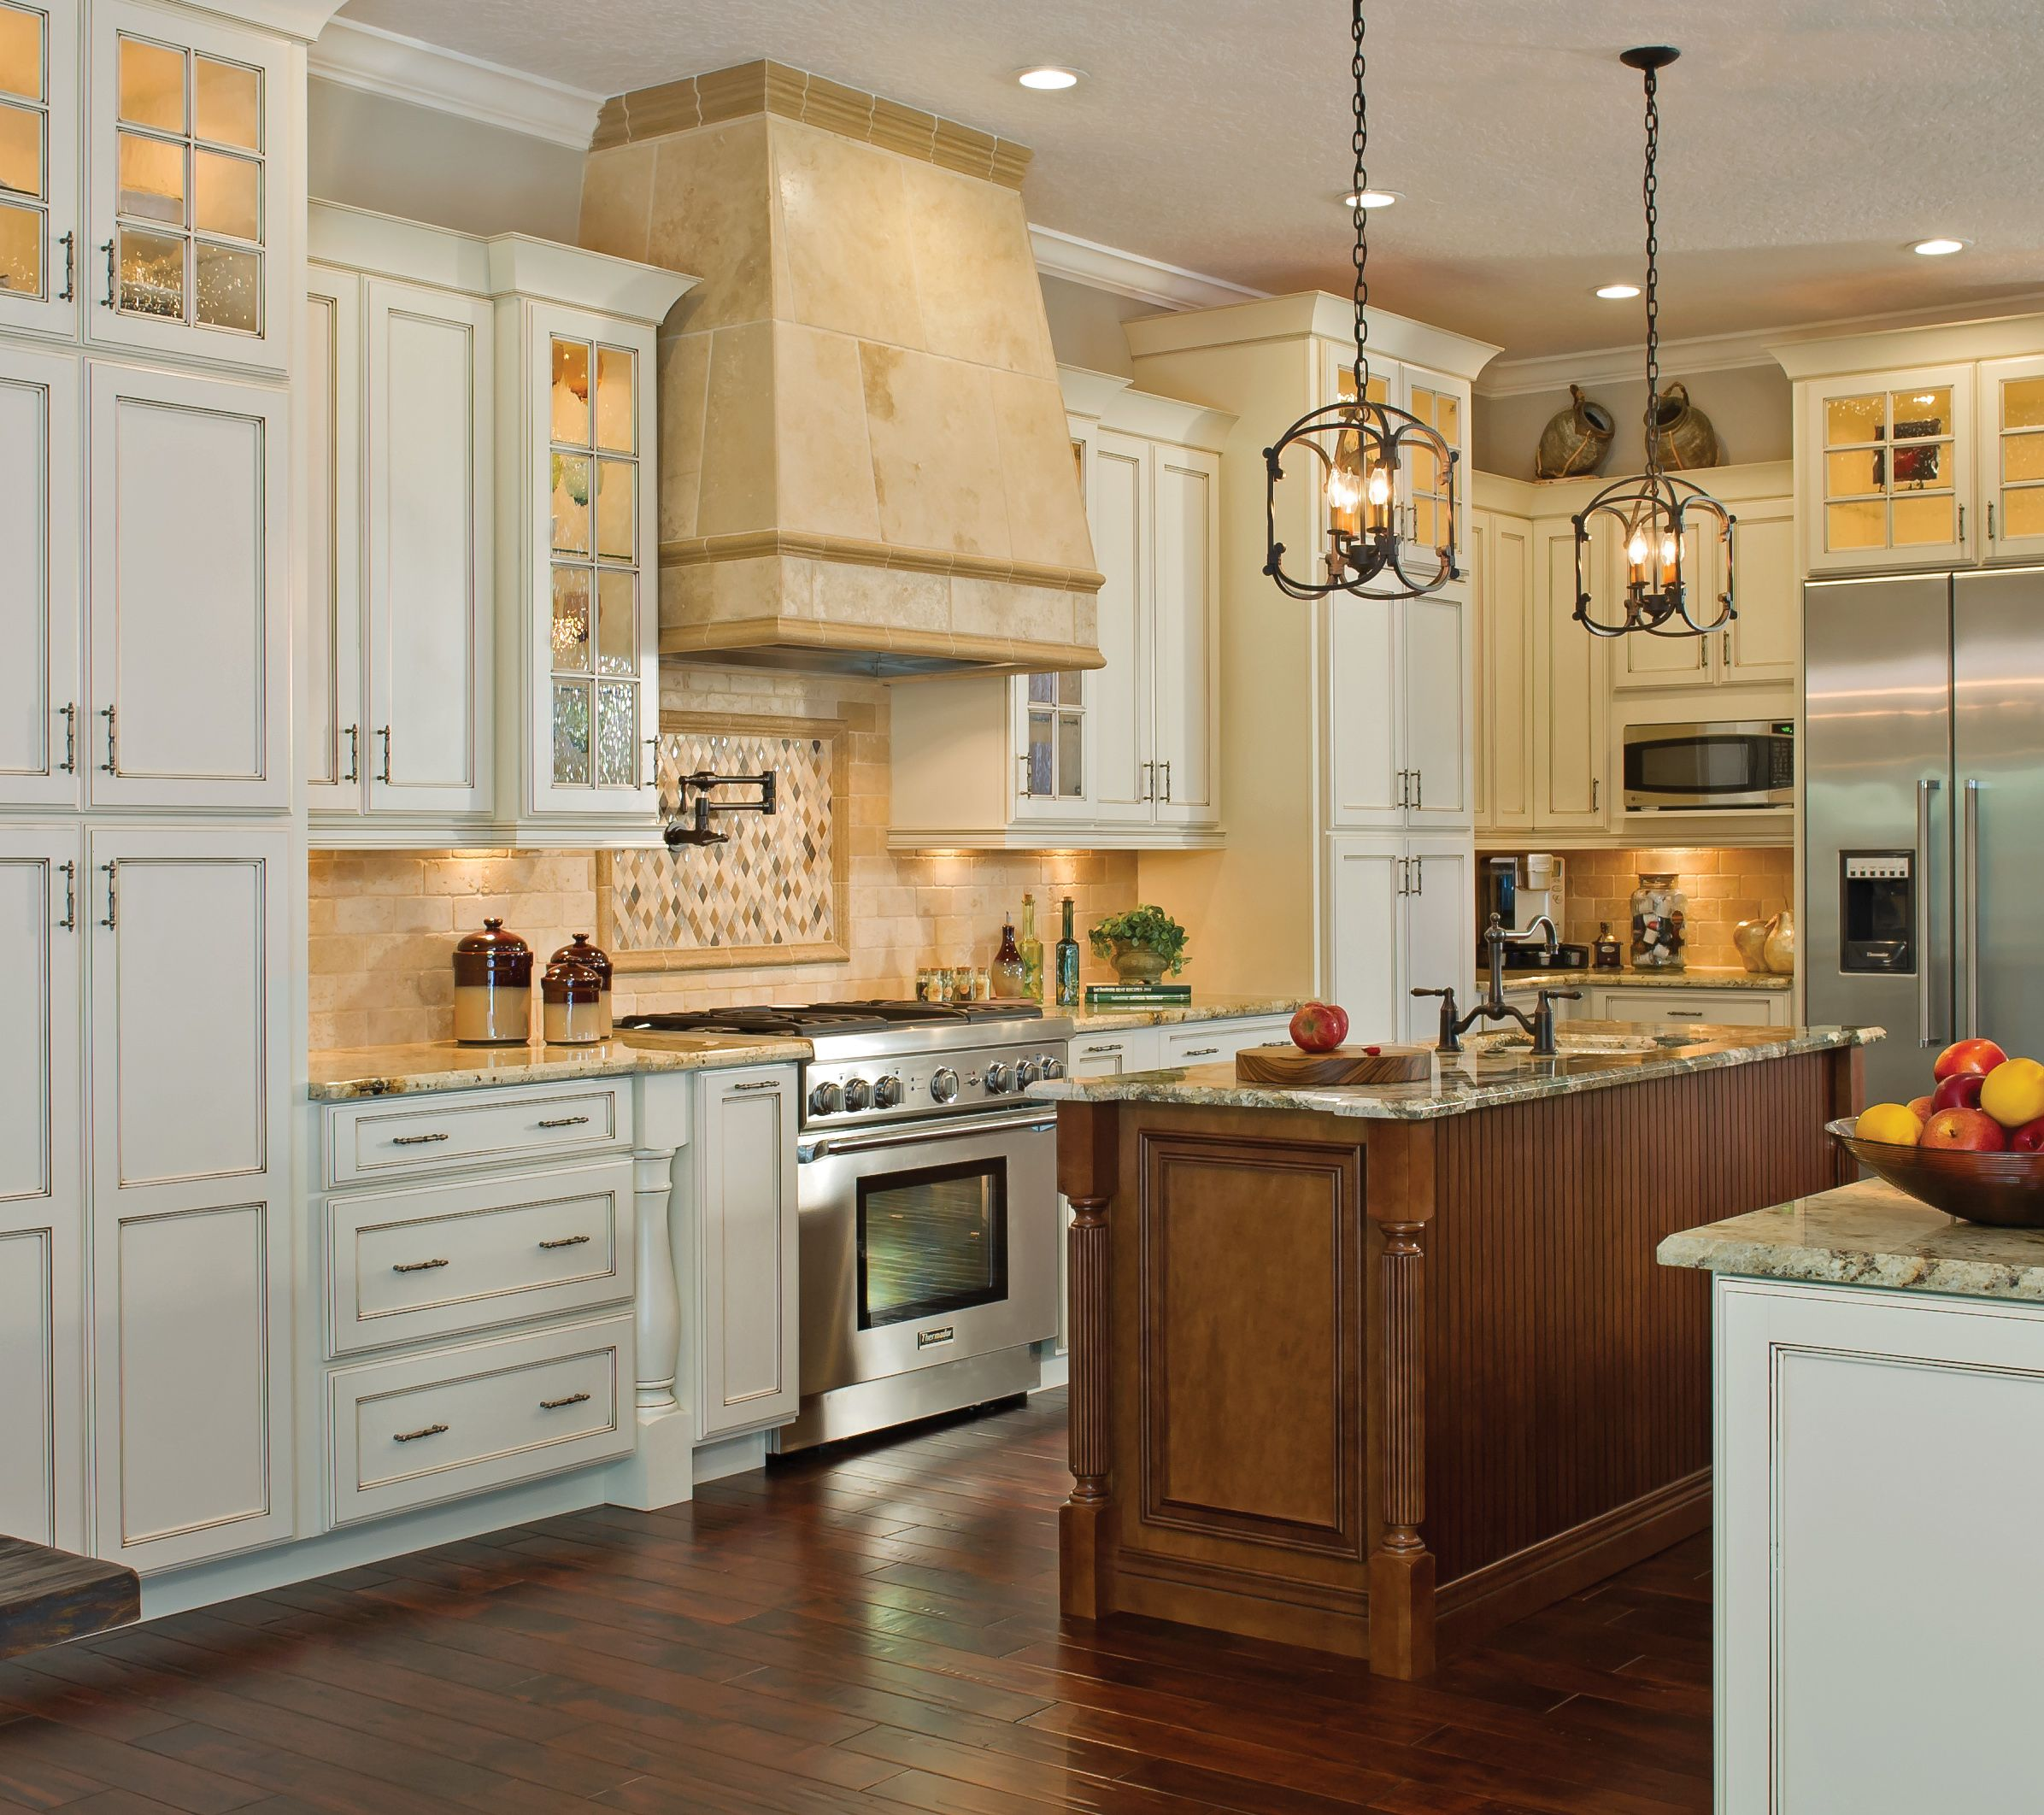 Interior Design Kitchen Traditional: Traditional Kabinart Kitchen Shown In Hampton On Maple With An Aspen White Finish And Coffee